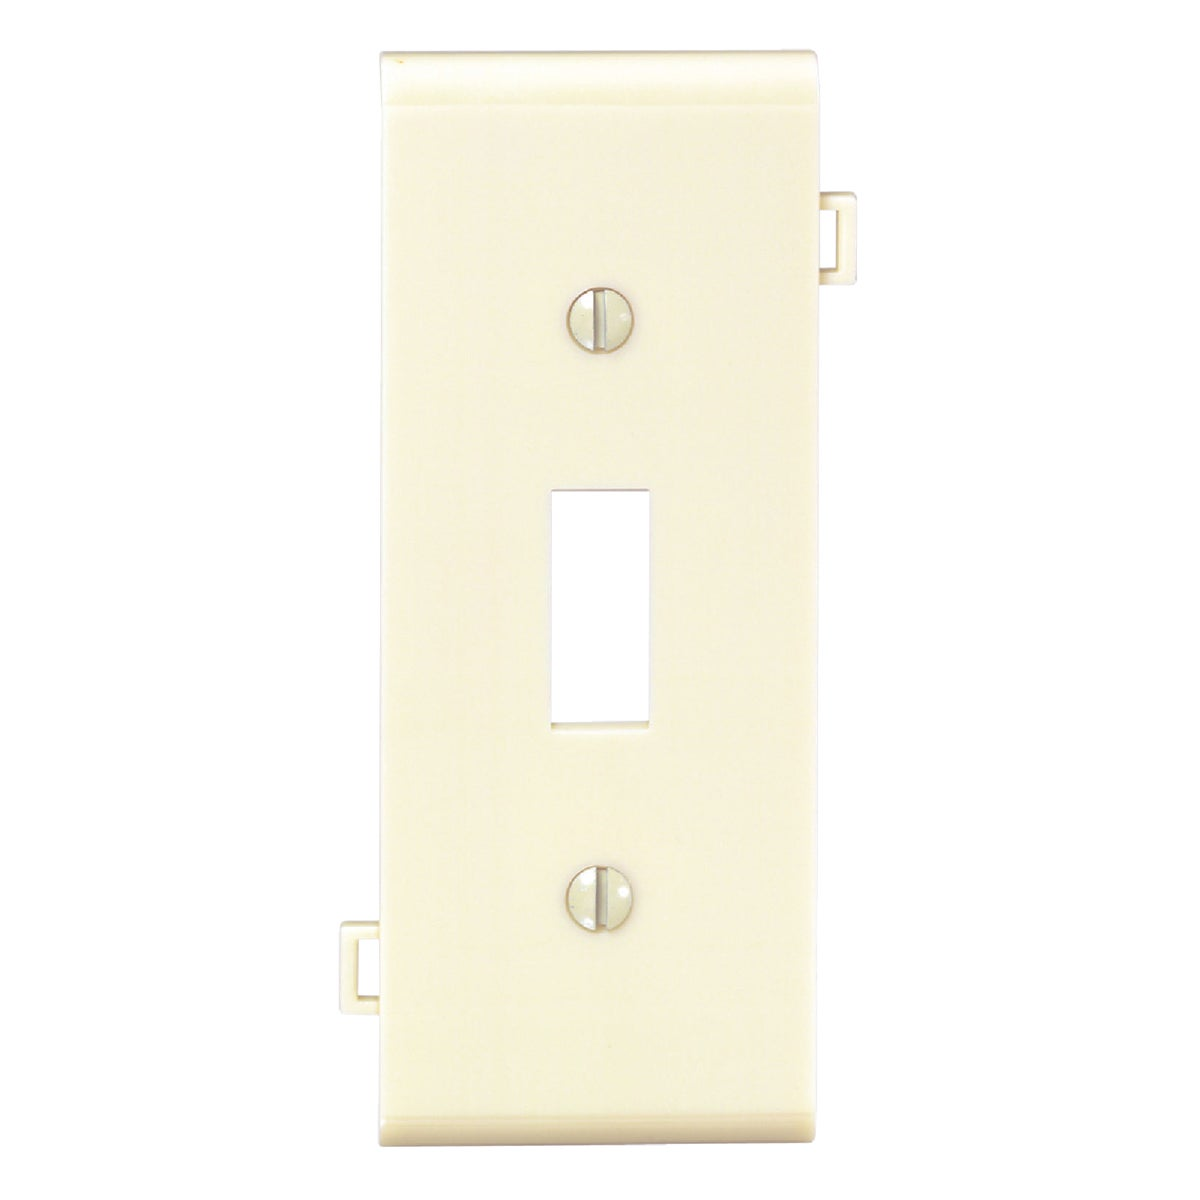 IV TOGL CENTER PLATE - PSC1I by Leviton Mfg Co